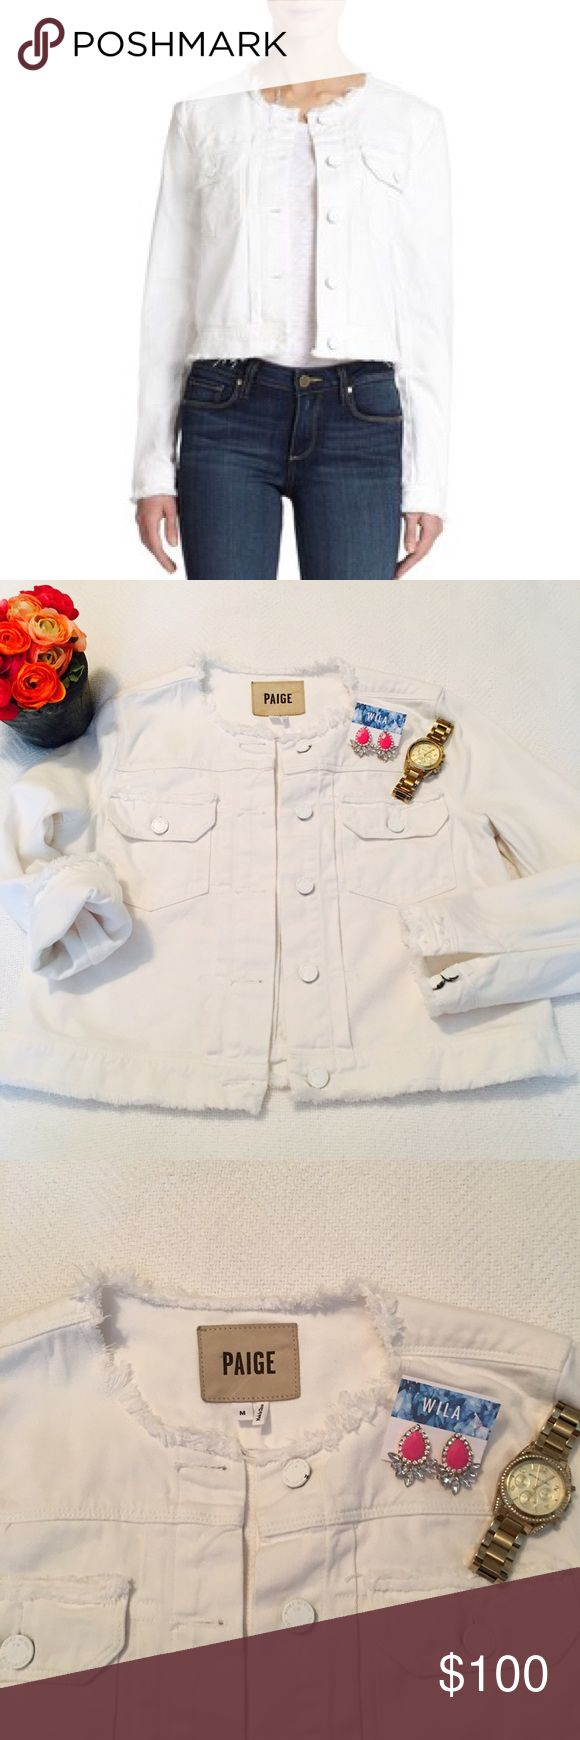 PAIGE Shannon Jacket Trendy White Jean Jacket in Great Condition, just see pics for wear on sleeve buttons. Paige Jeans Jackets & Coats